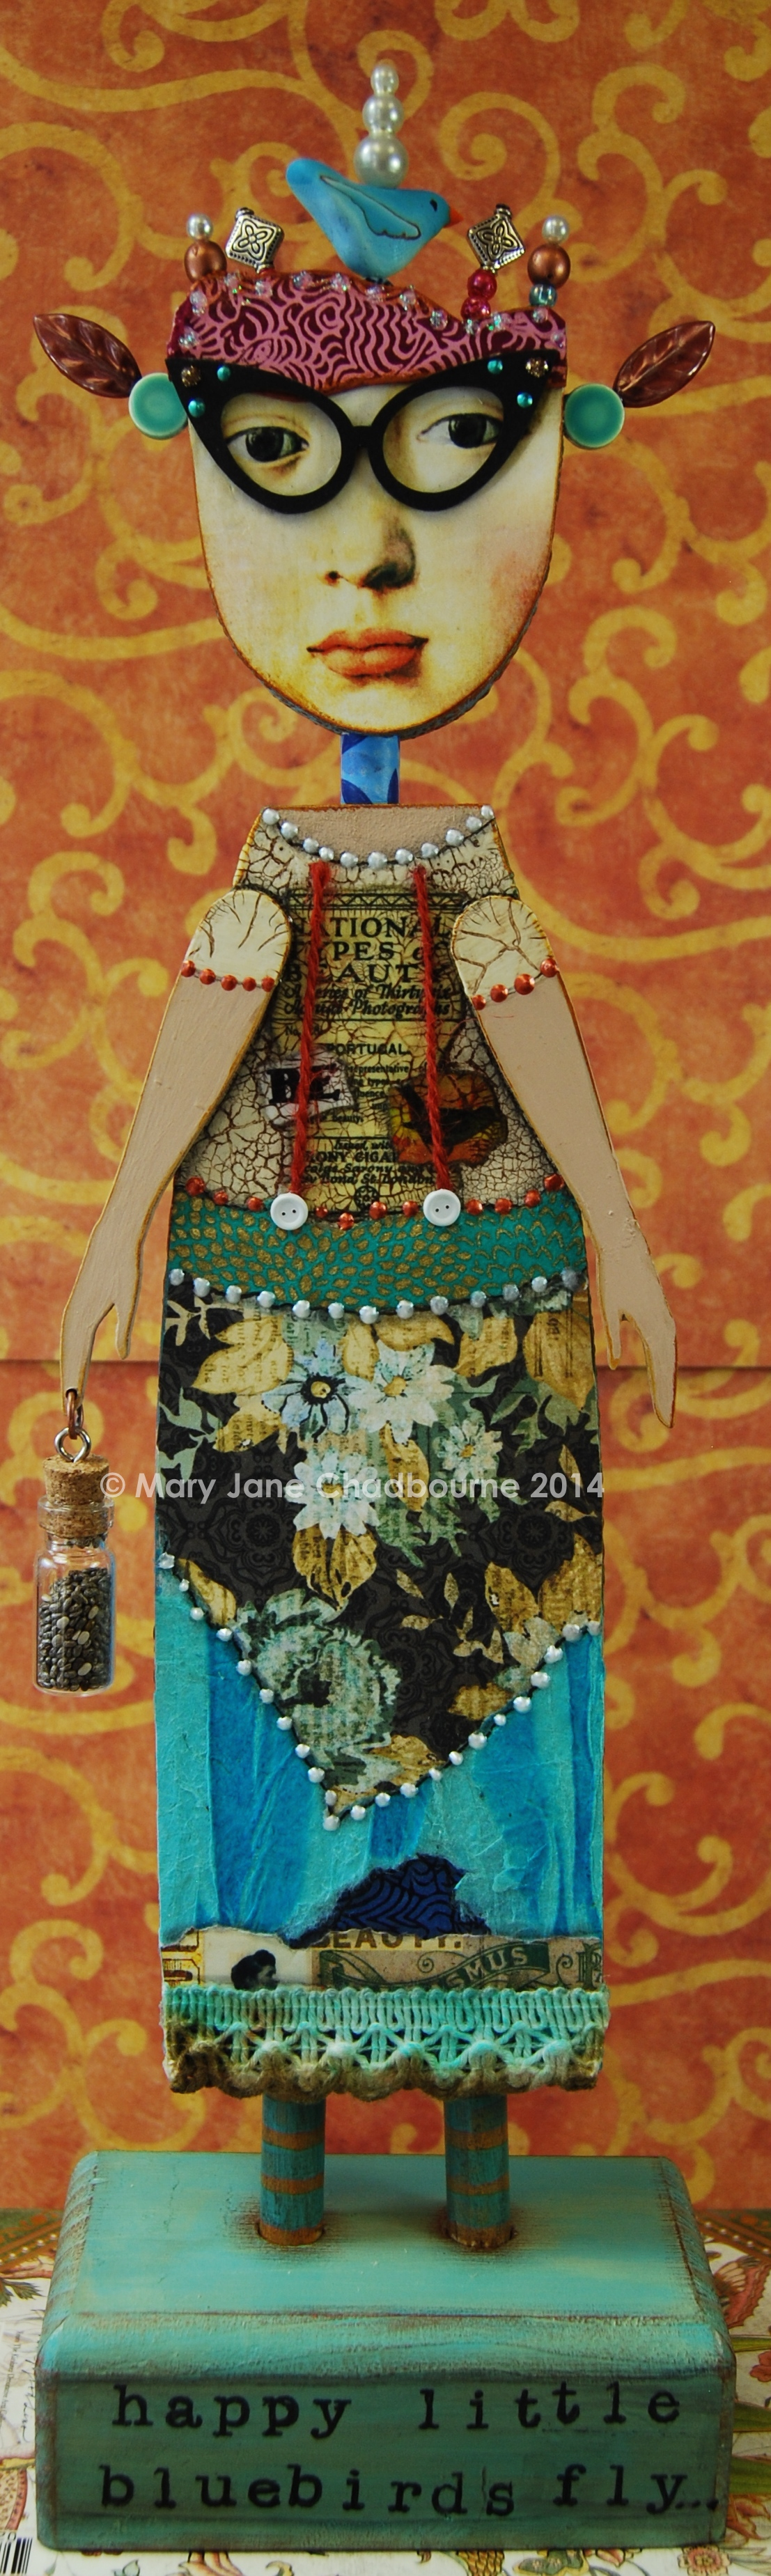 """From """"The Imaginarium - Anthology of an Art Doll"""", an online class this summer on atozinnia.org"""